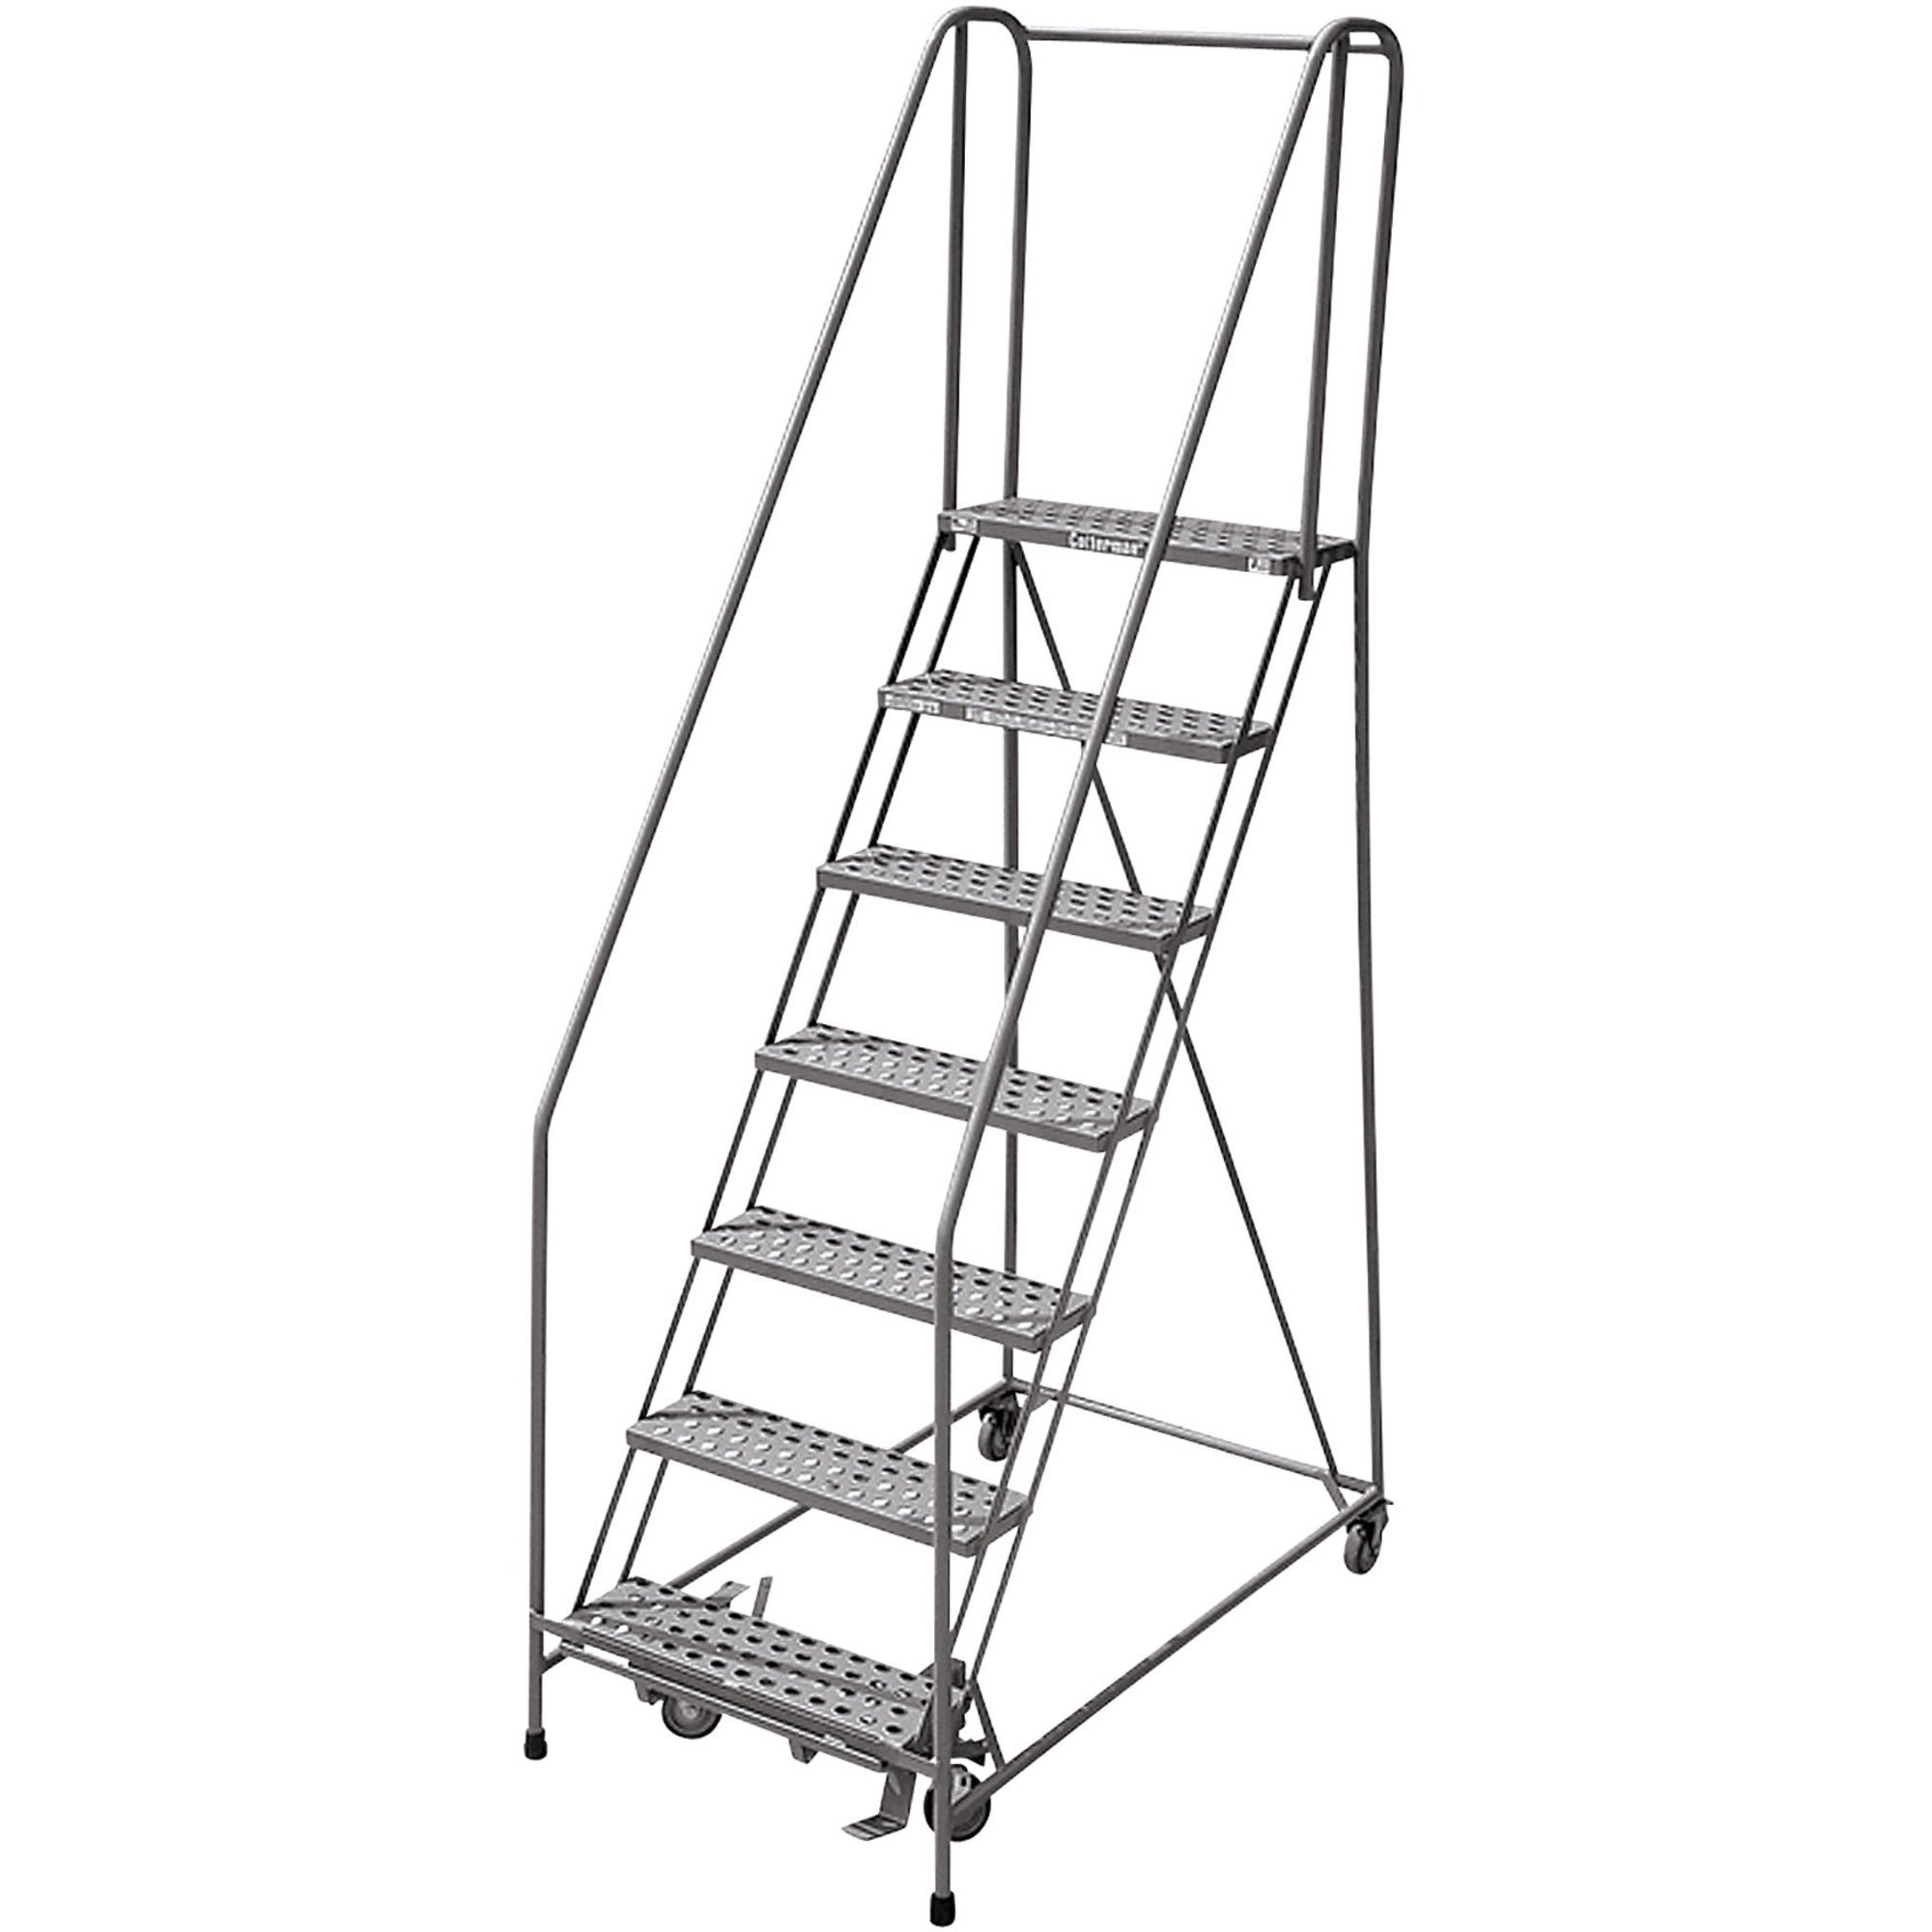 2000x2000 Cotterman (Rolling) Ladder 80in. Max. Height, Model  1008r2632a1